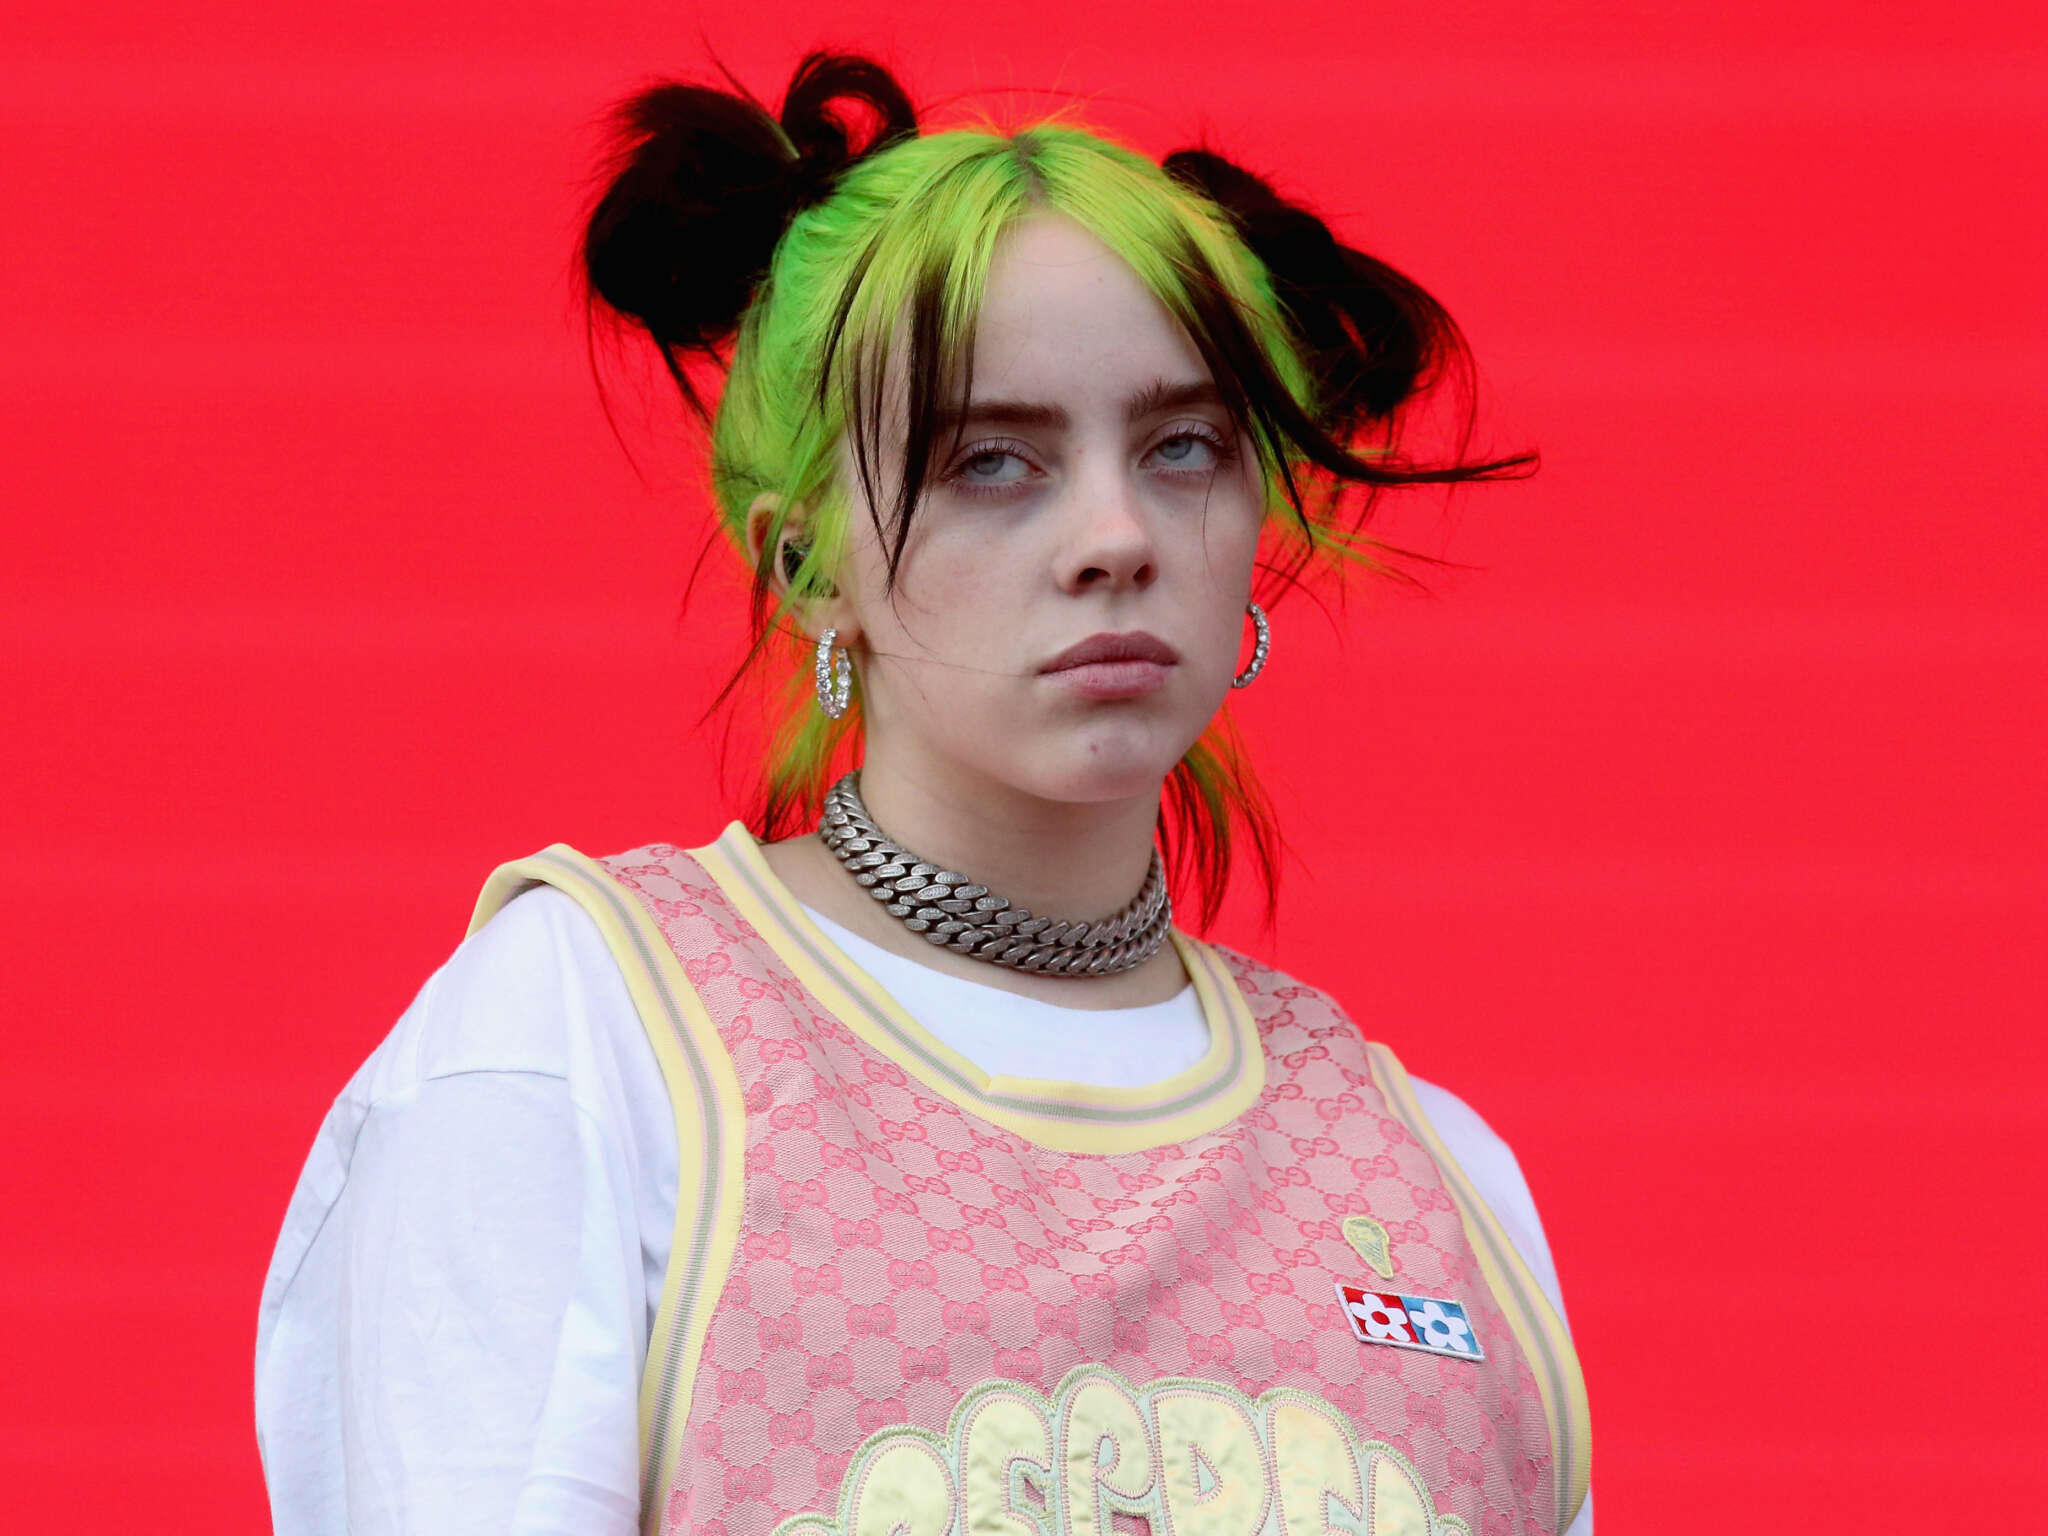 Billie Eilish Opens Up About Hating Her Body As A Preteen – Reveals She'd Starve Herself And Take Diet Pills!